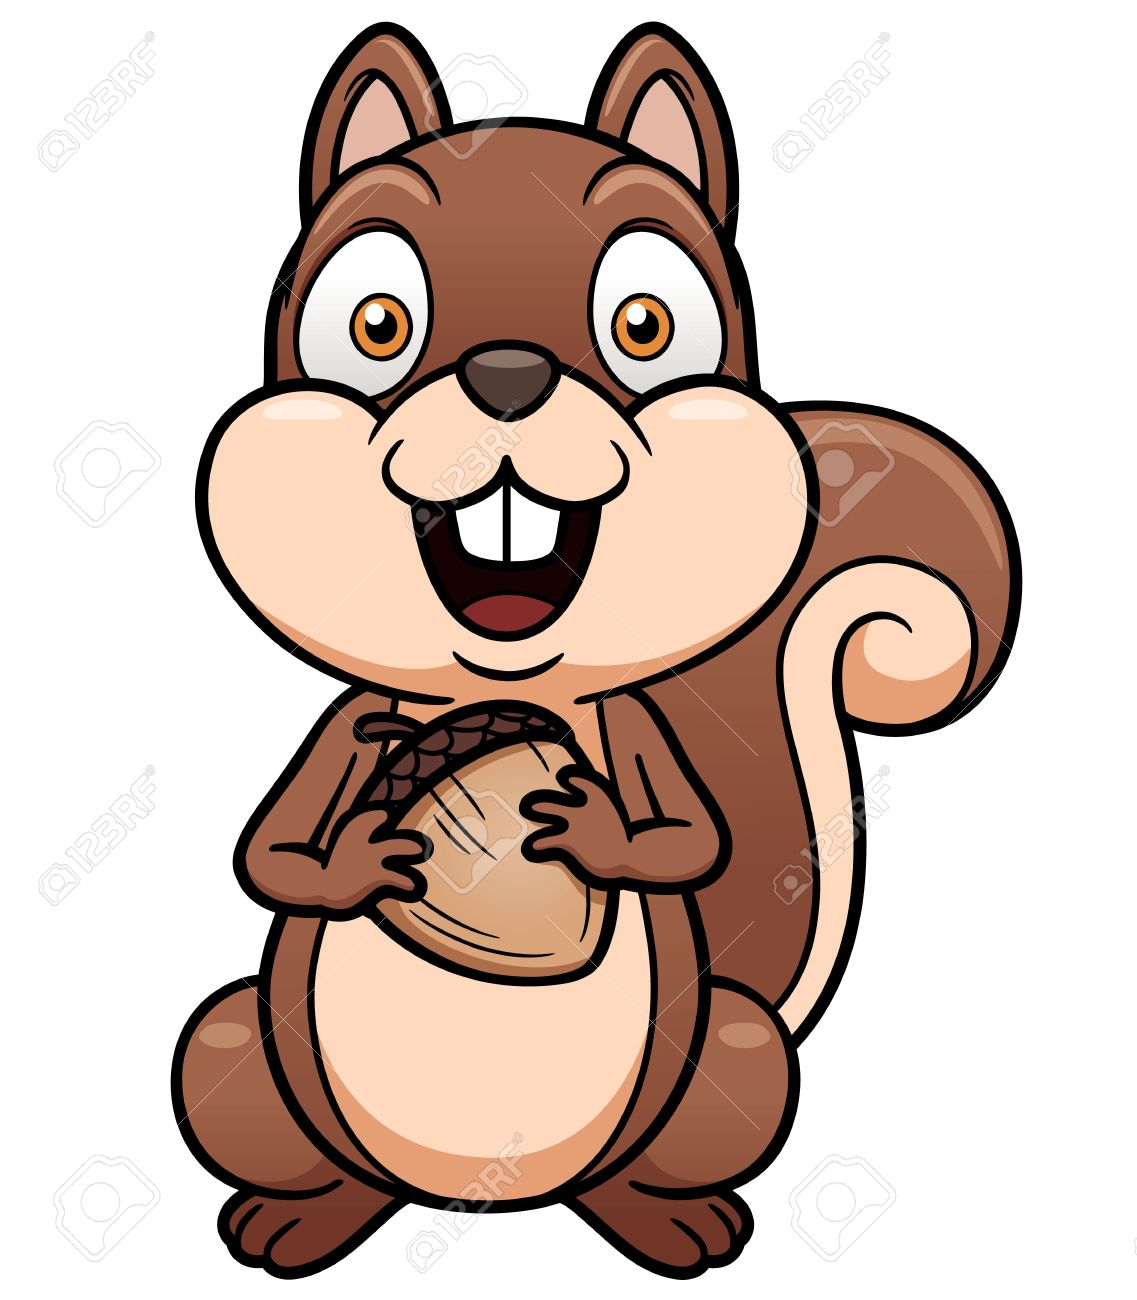 1137x1300 Squirrel Cartoon Images Amp Stock Pictures. Royalty Free Squirrel